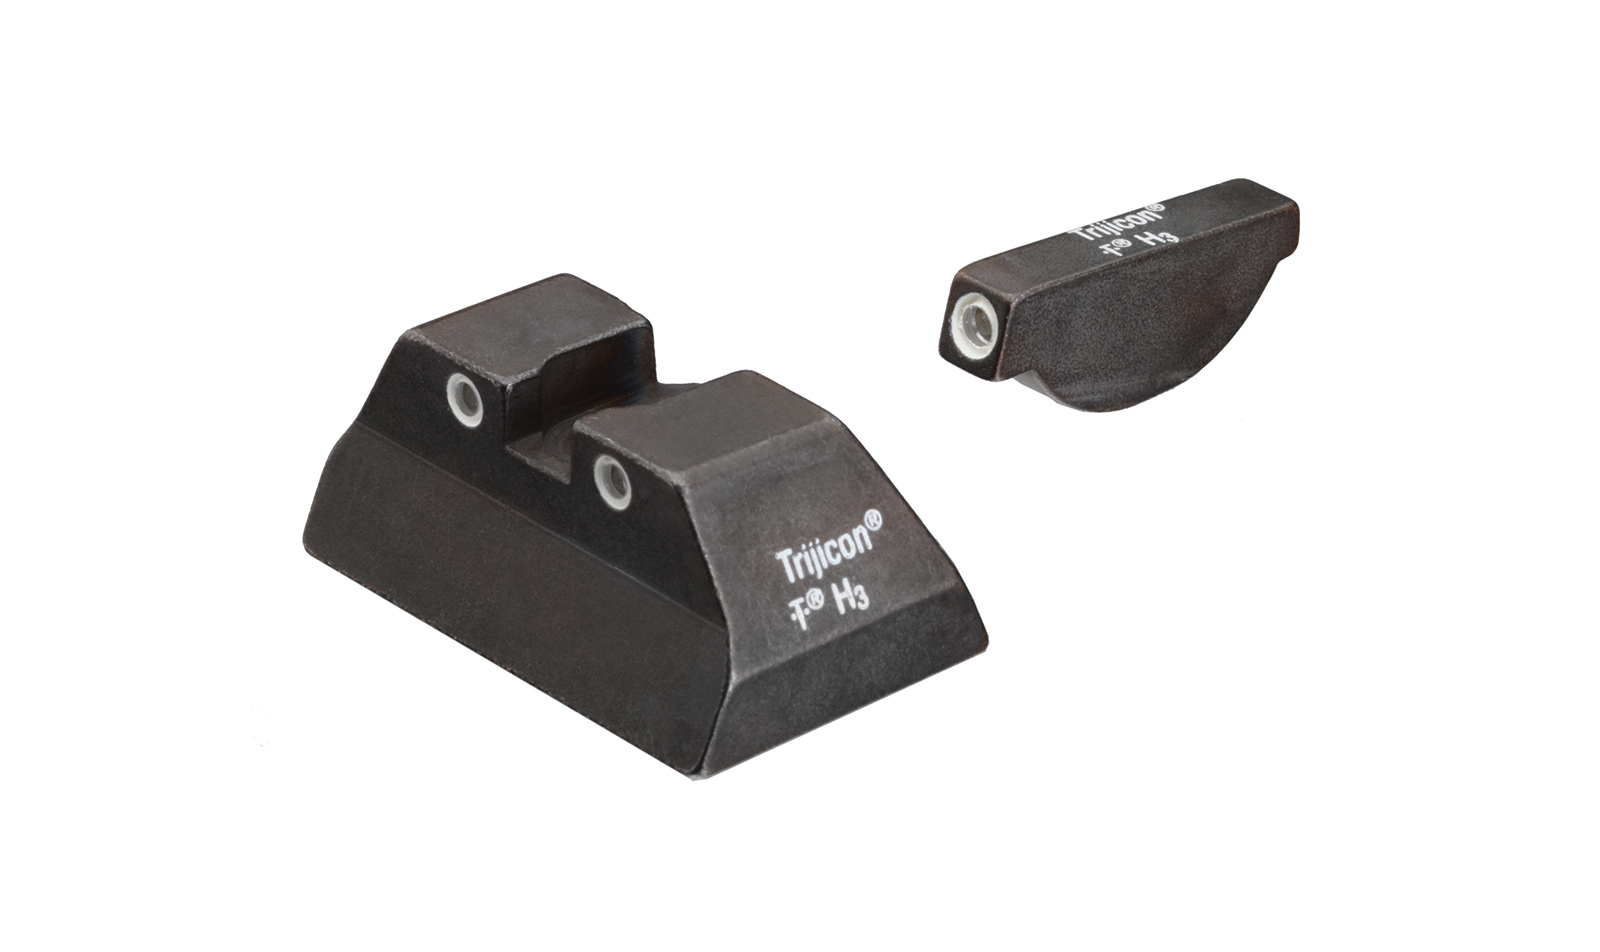 Trijicon Bright & Tough™ Night Sights - Ruger P90, 91, 93, 93c, 95, 97